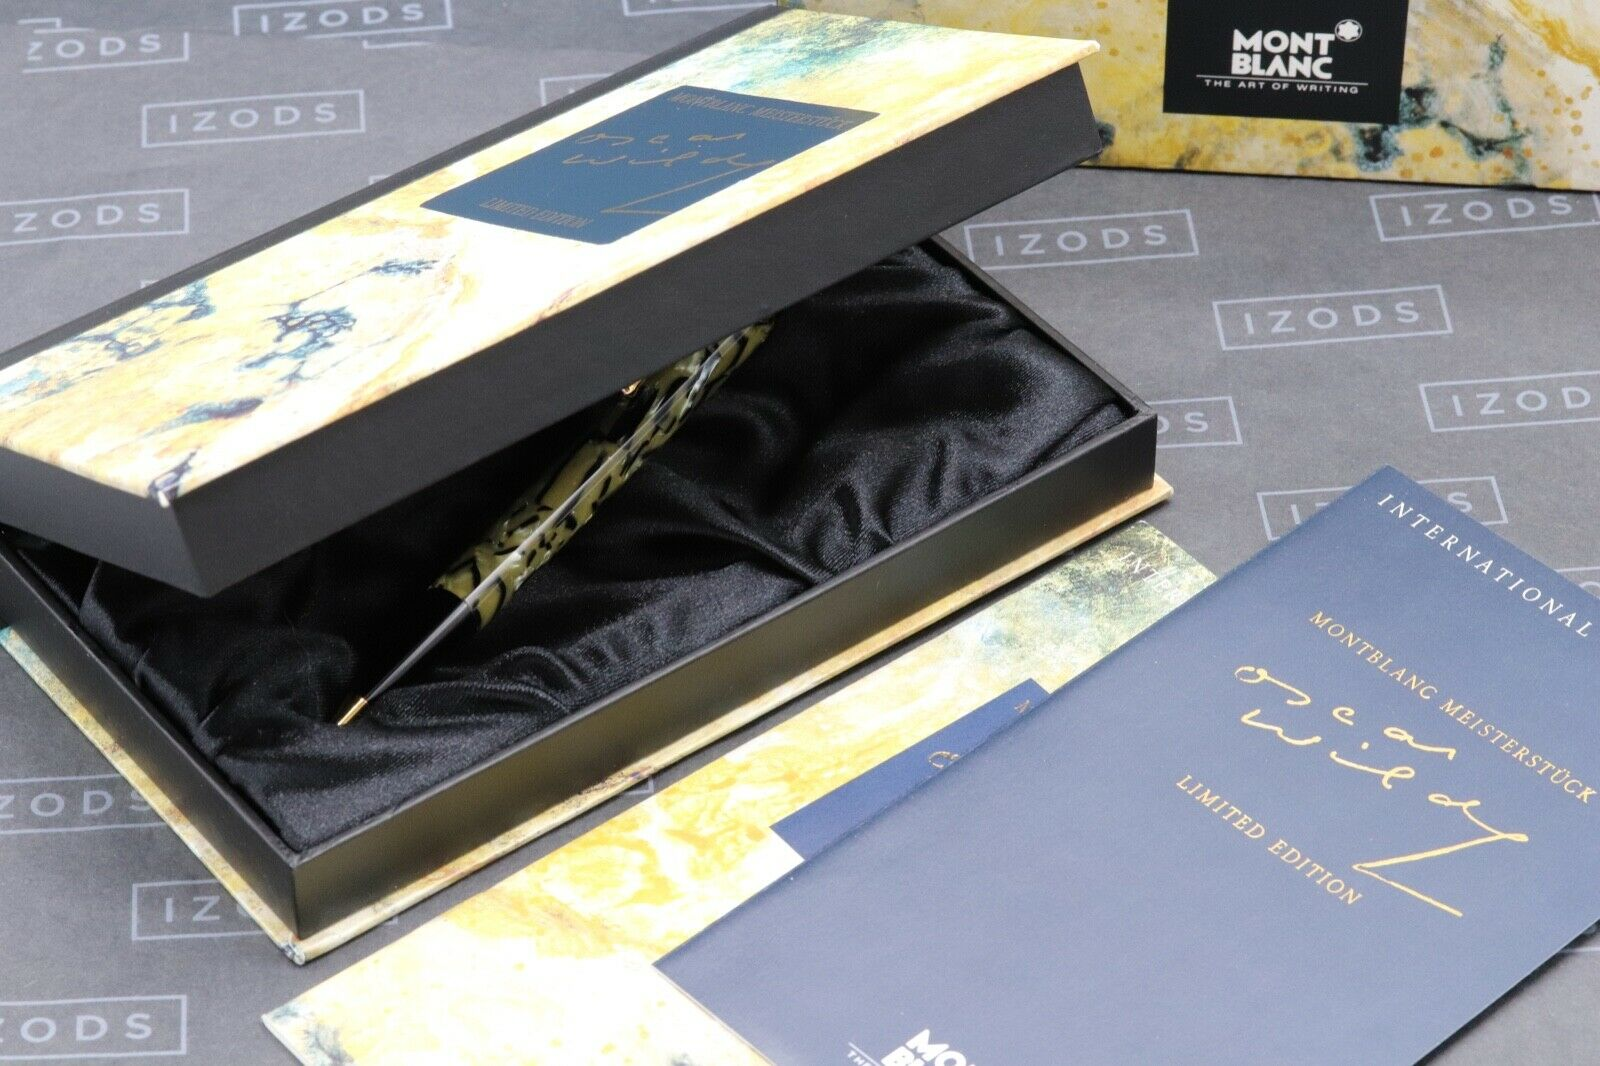 Montblanc Oscar Wilde Writers Limited Edition Mechanical Pencil 9